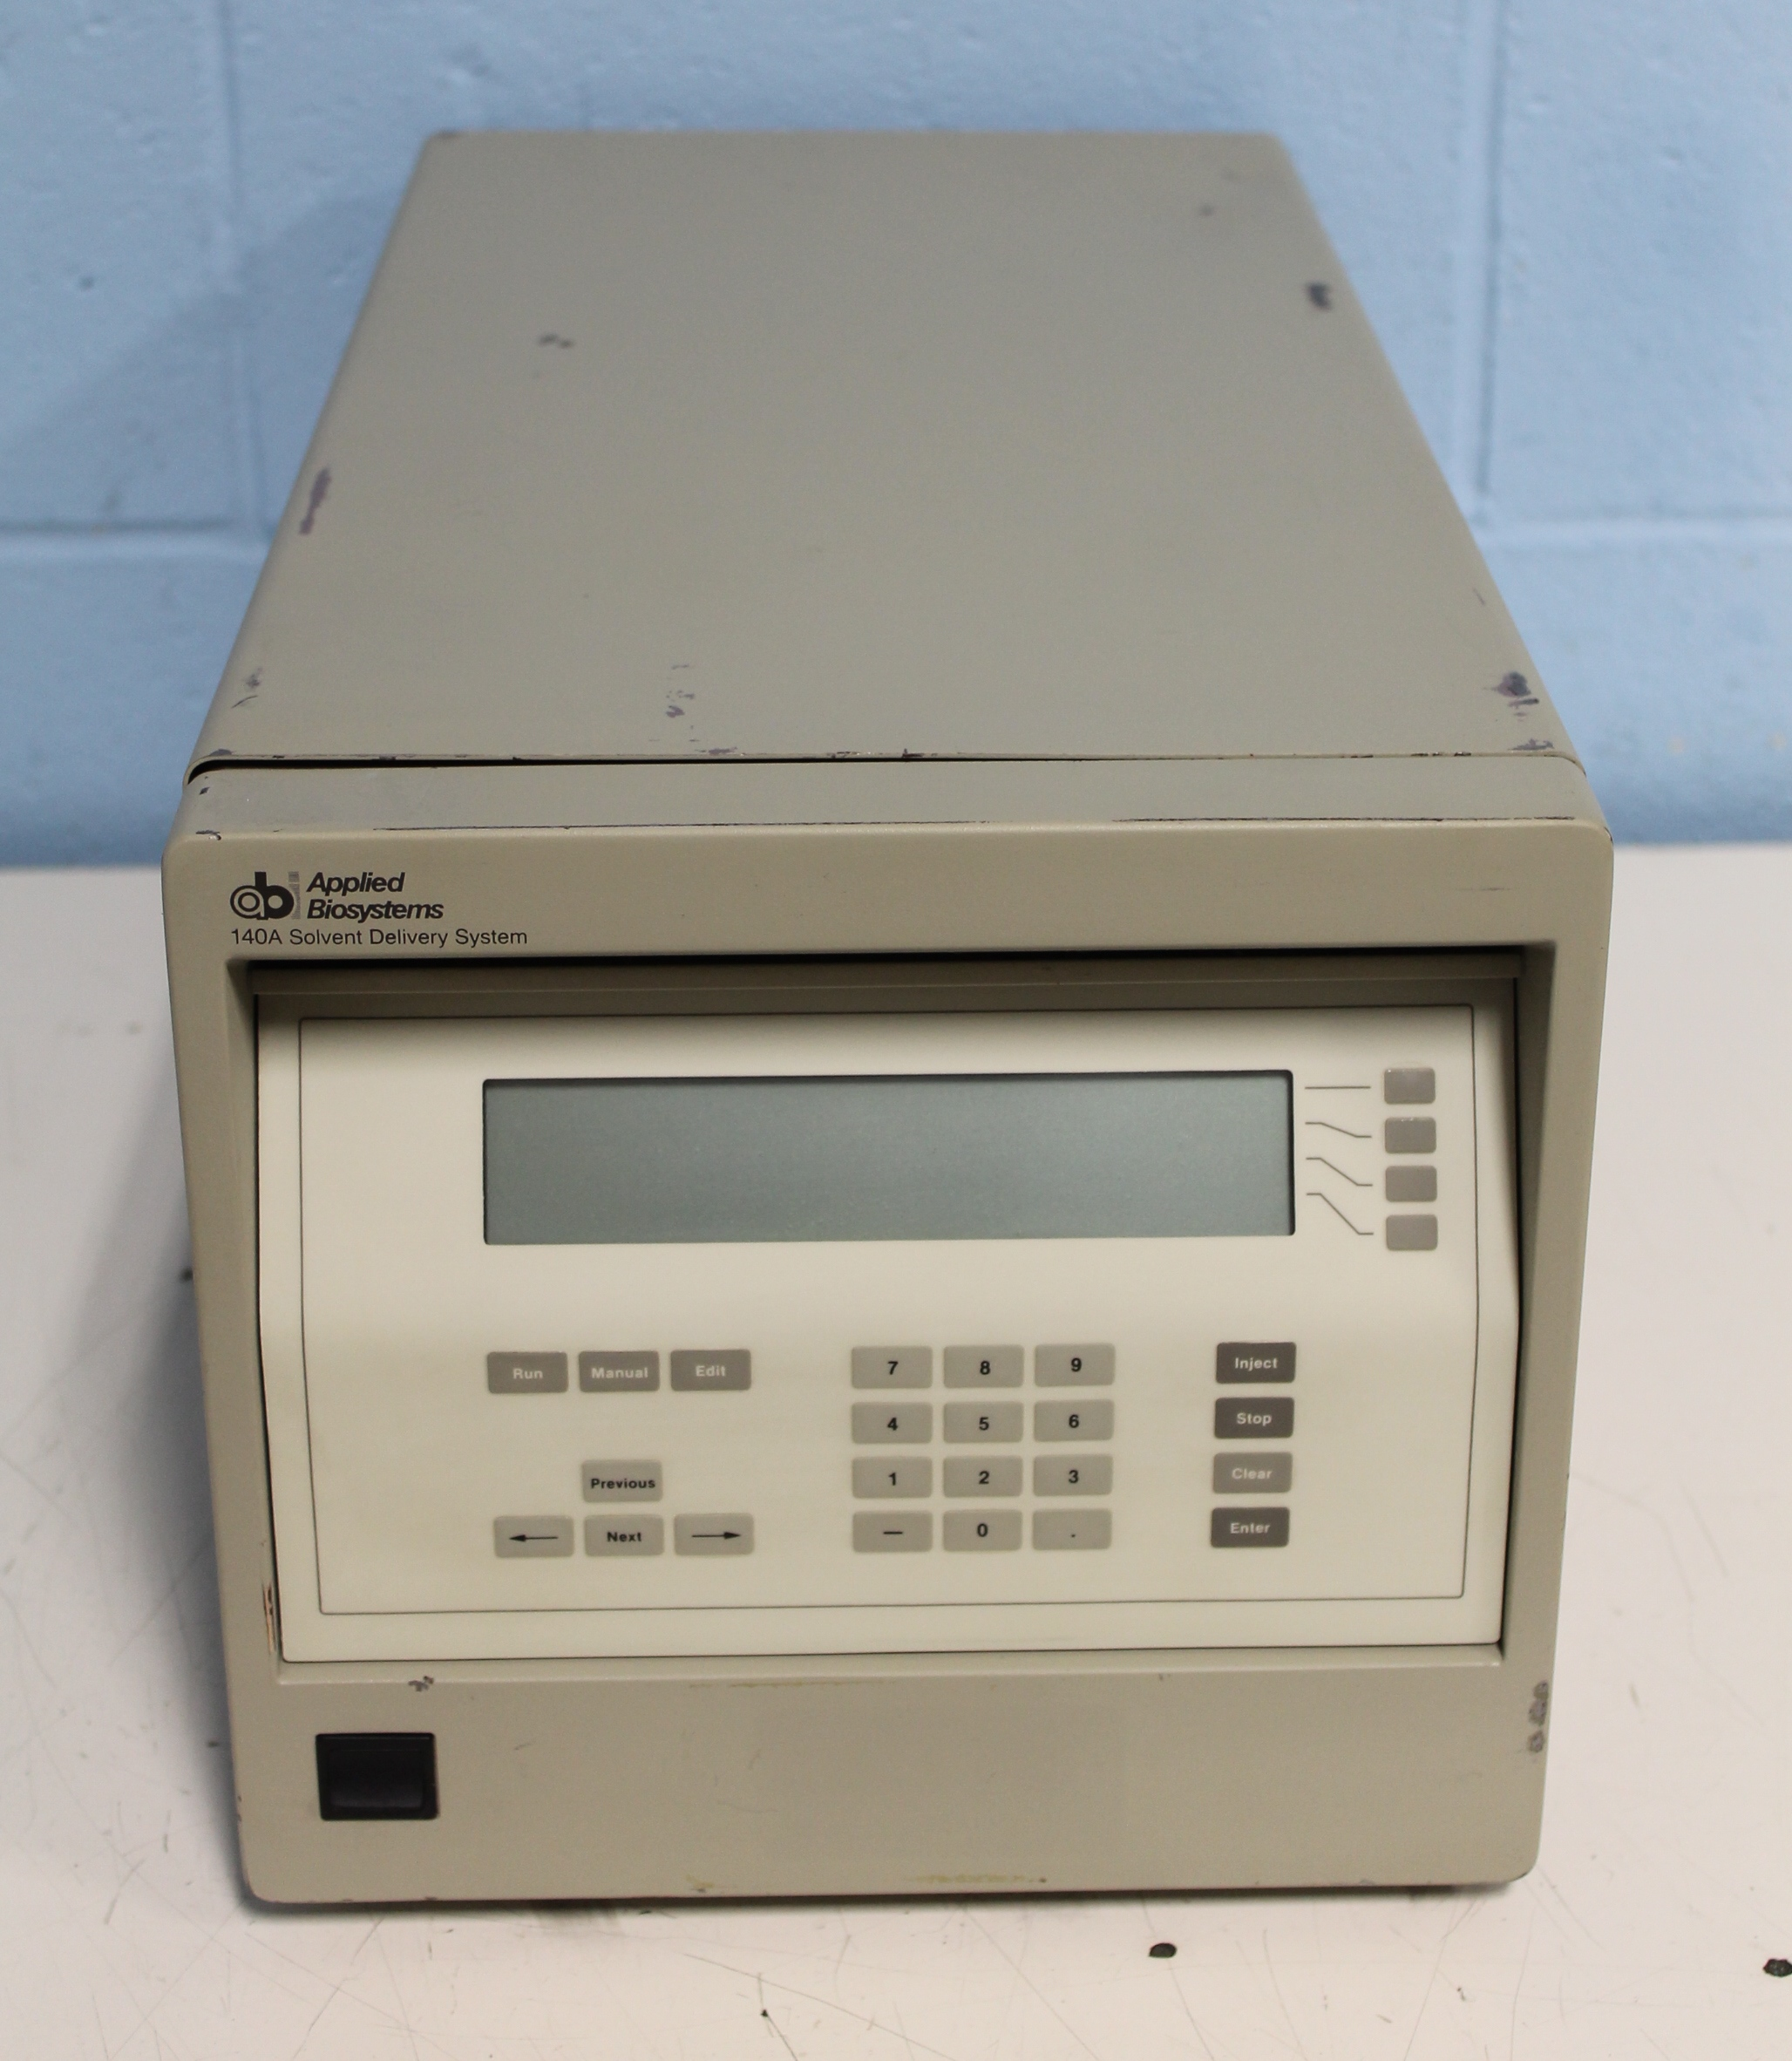 Applied Biosystems Solvent Delivery System 140A autosampler Image